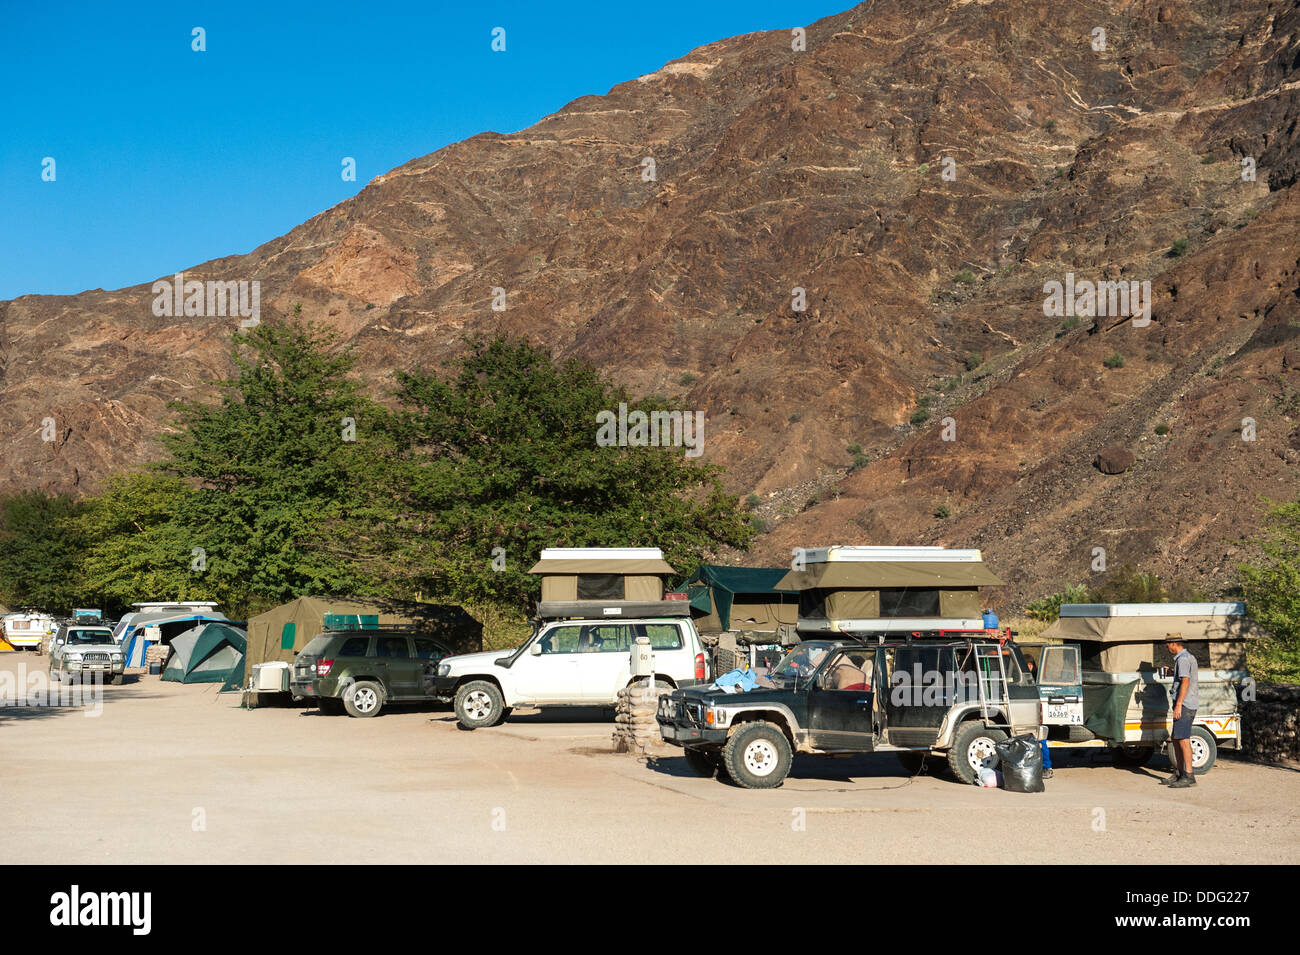 People with their camper vehicles at Ai-Ais campsite, Southern Region, Namibia - Stock Image